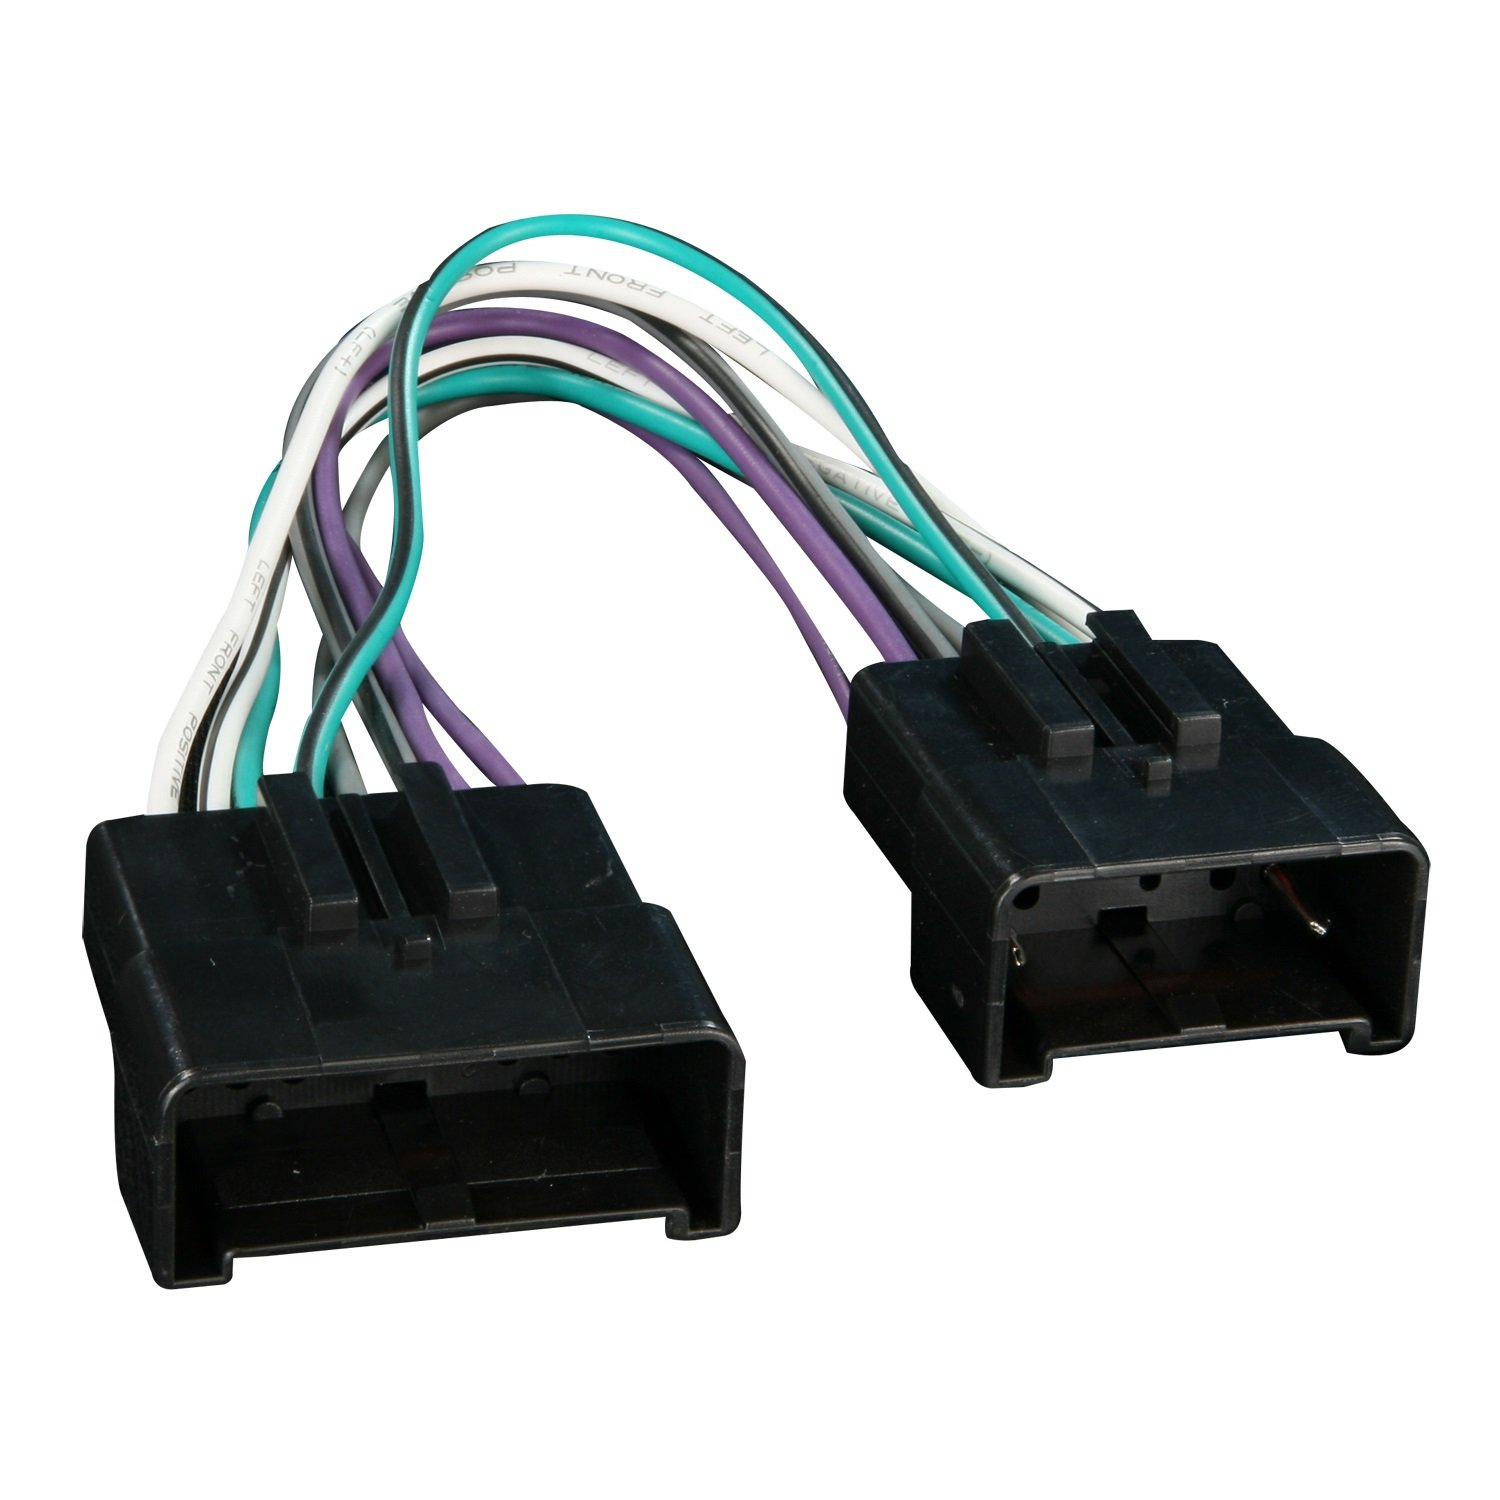 71pSHbvTl0L._SL1500_ amazon com metra 70 5513 radio wiring harness for ford amplifier Dash Kit for F150 at honlapkeszites.co